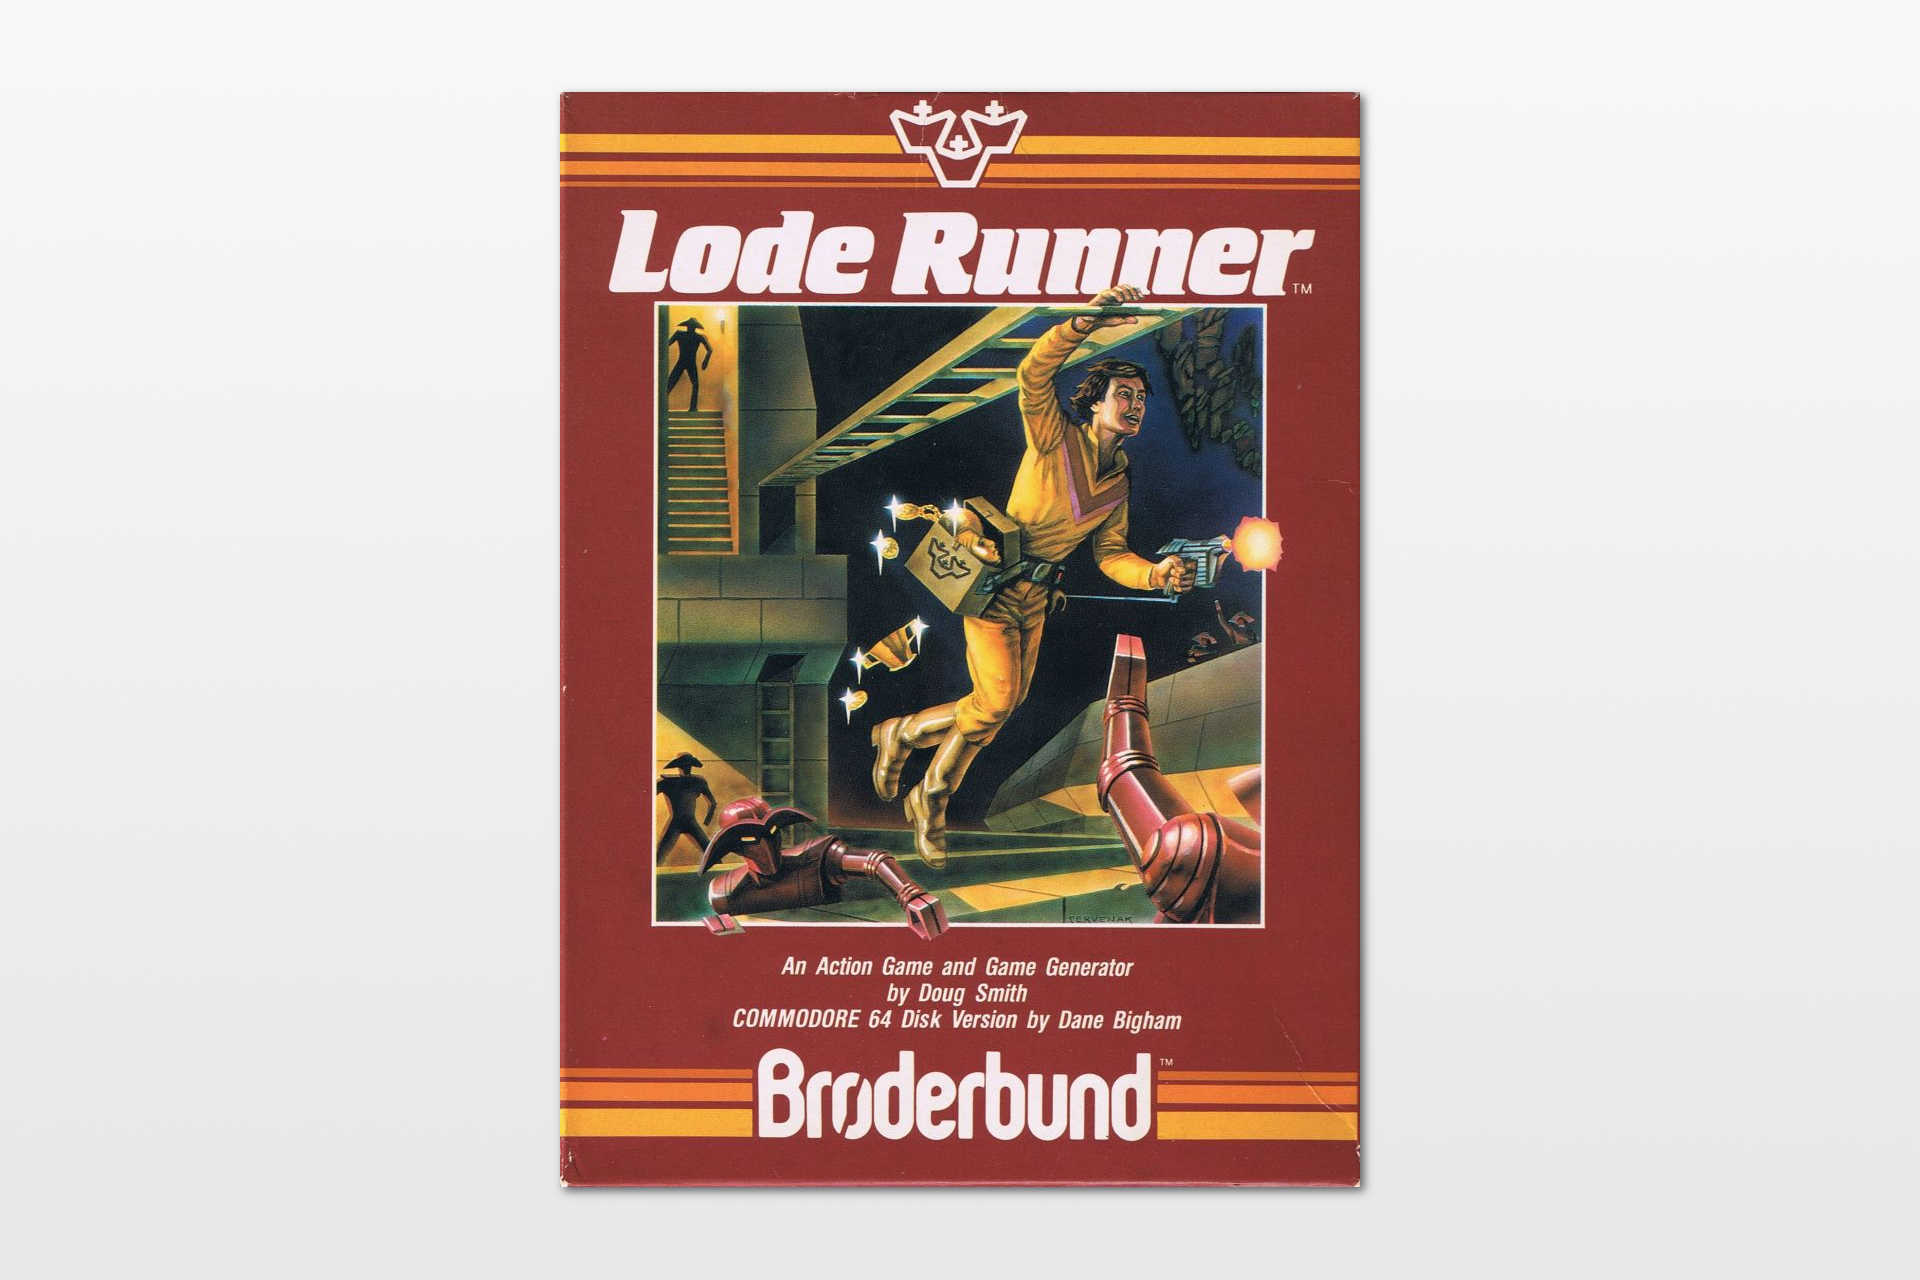 Retro gaming: Lode Runner